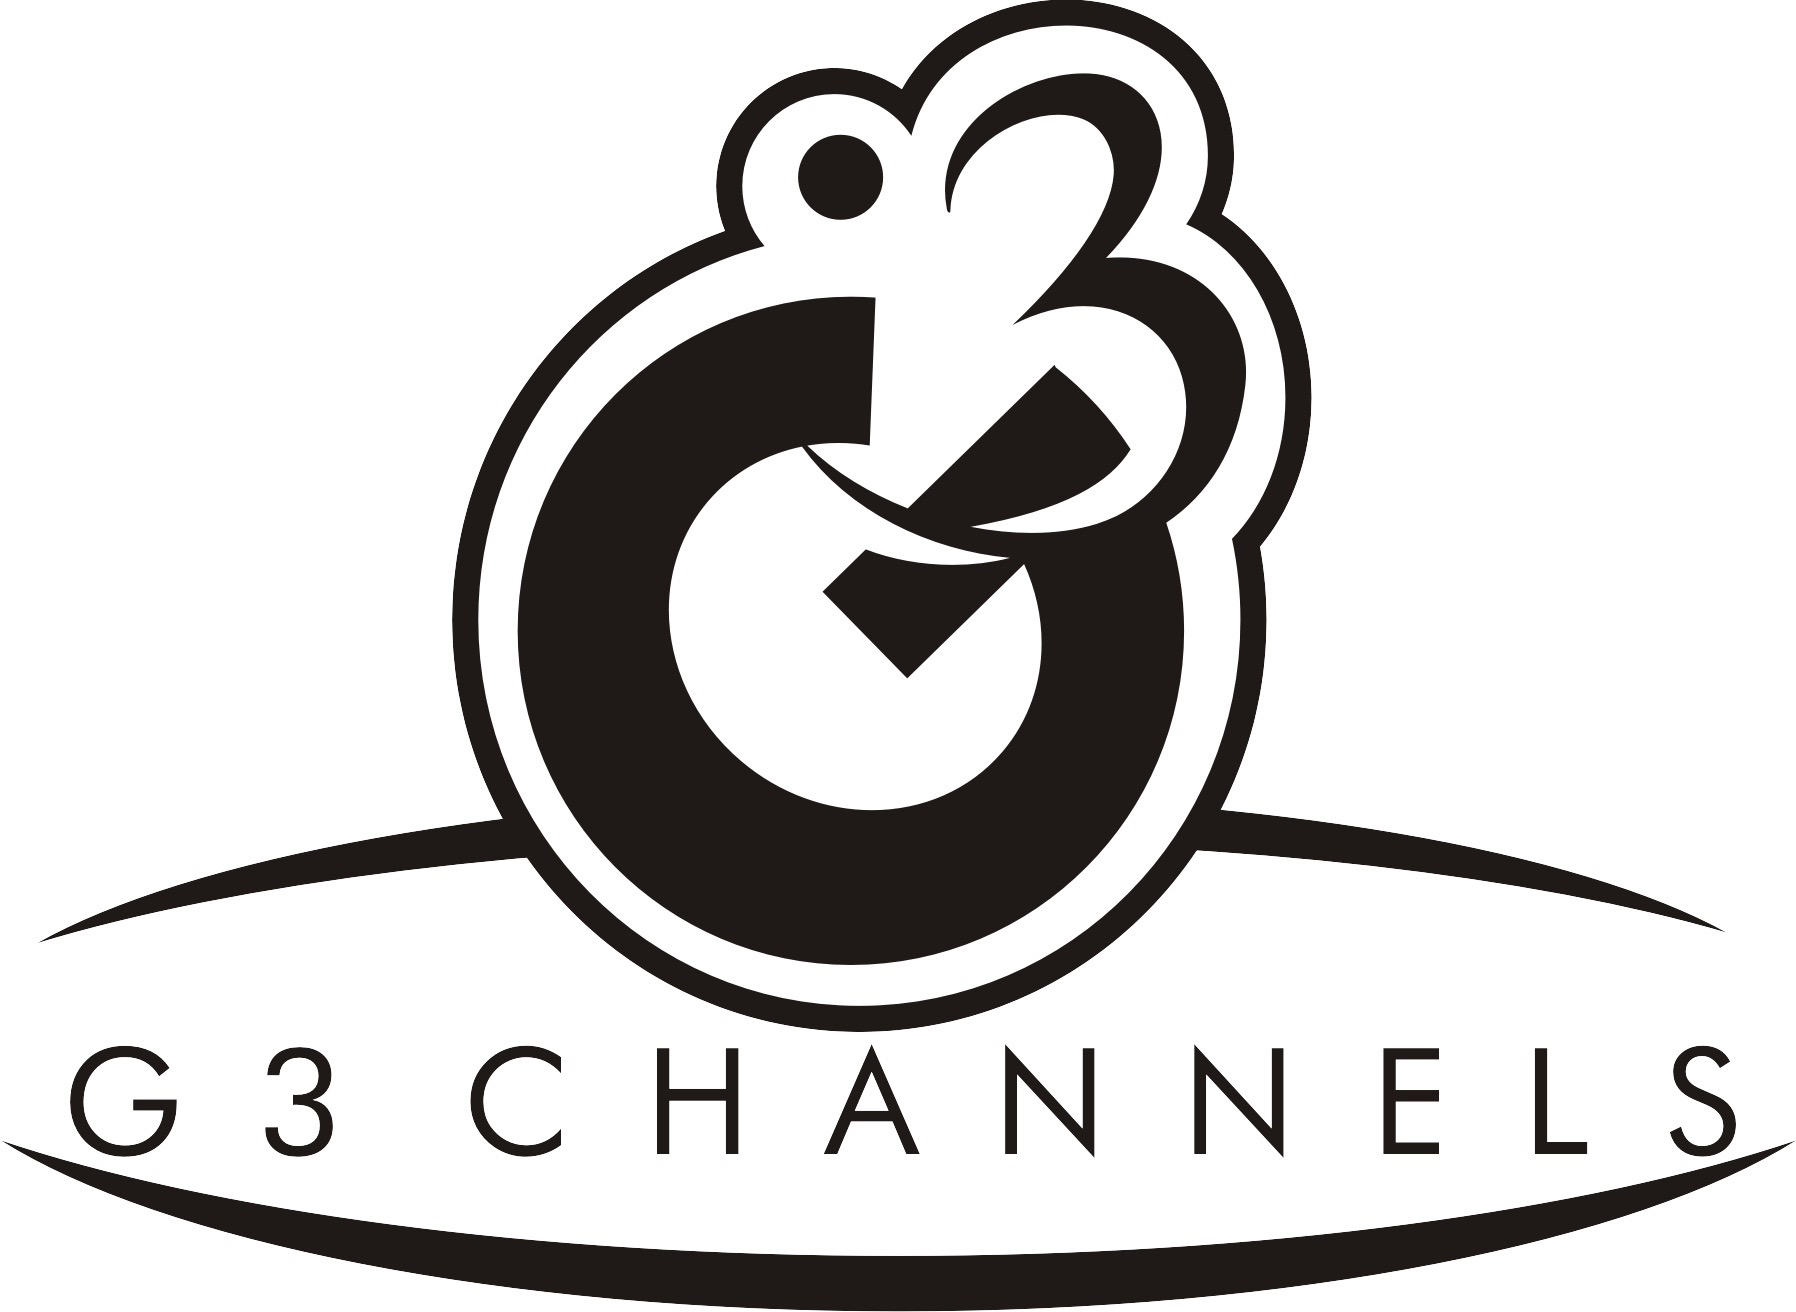 G3 CHANNELS